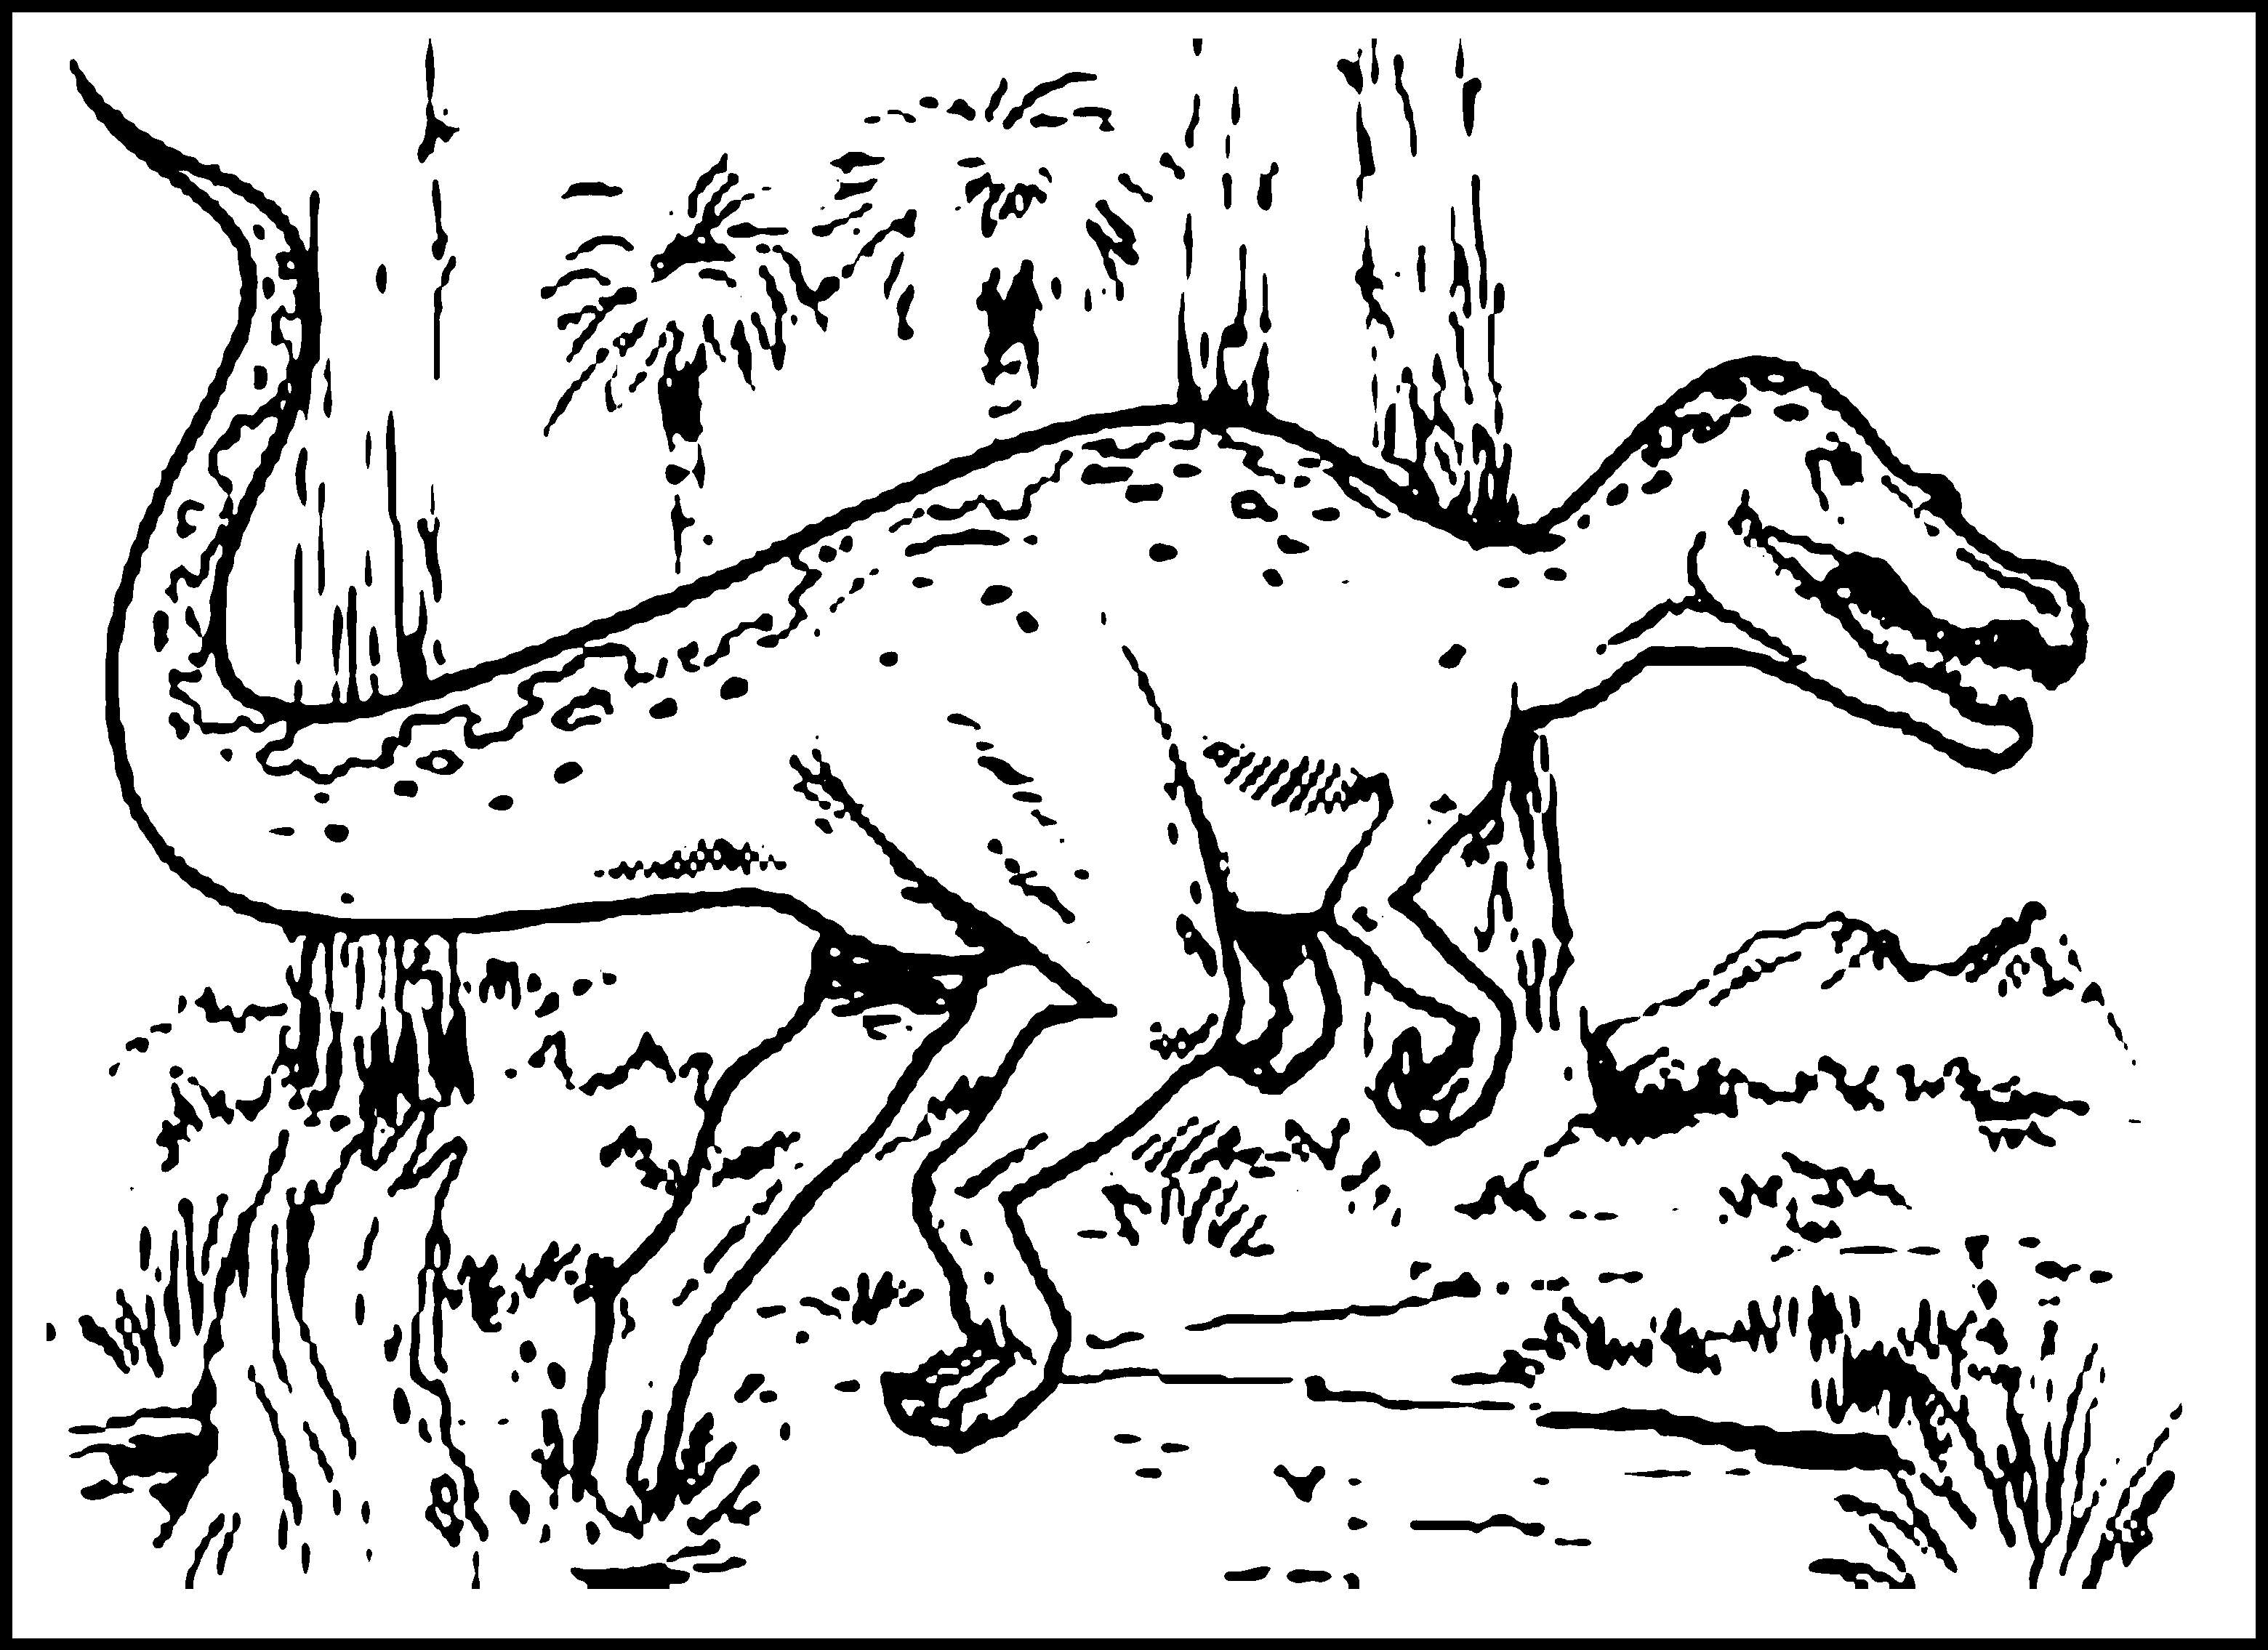 dinosaurs coloring pages printable coloring pages dinosaur free printable coloring pages printable pages coloring dinosaurs